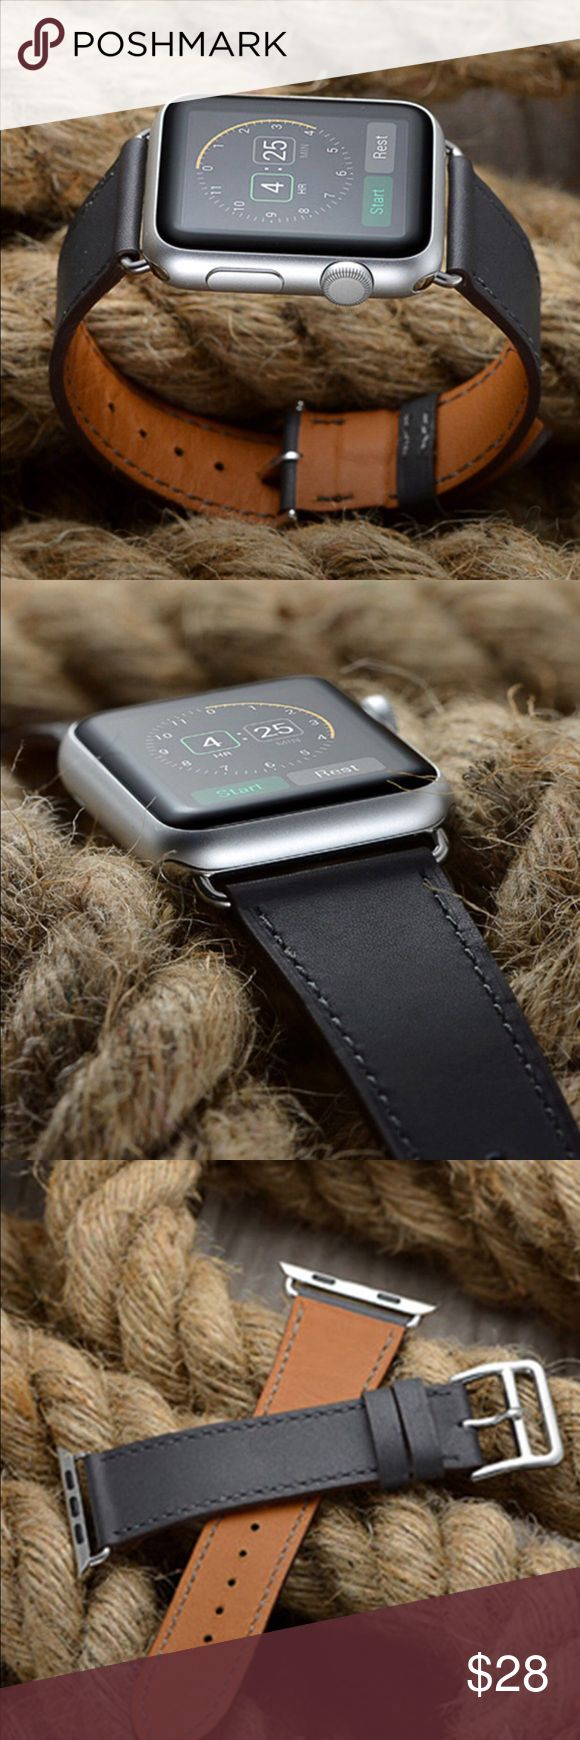 Dark gray Apple Watch leather band, 38mm or 42mm!! Dark gray Apple Watch leather Band, 38mm or 42mm with silver adapters and silver buckle. Please select your size when you purchase.  Only the band is for sale; it does not include the watch. I also have other styles, band colors and hardware colors. Please see the other listings in my closet or send me a message. Other